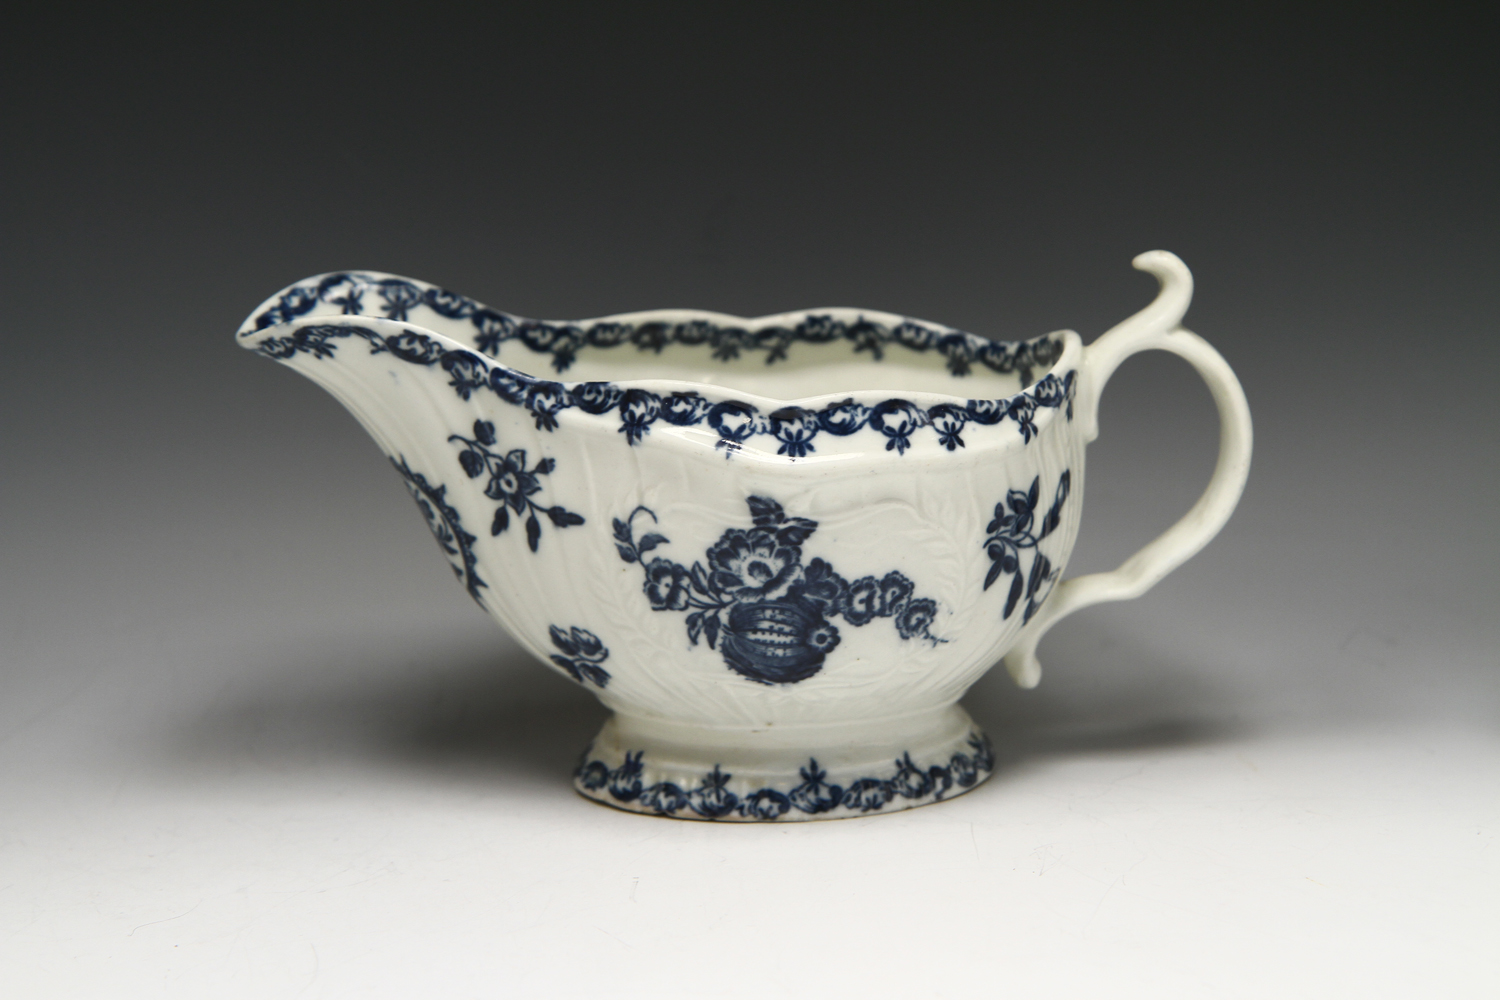 1063 - A Caughley sauceboat c 1778-80